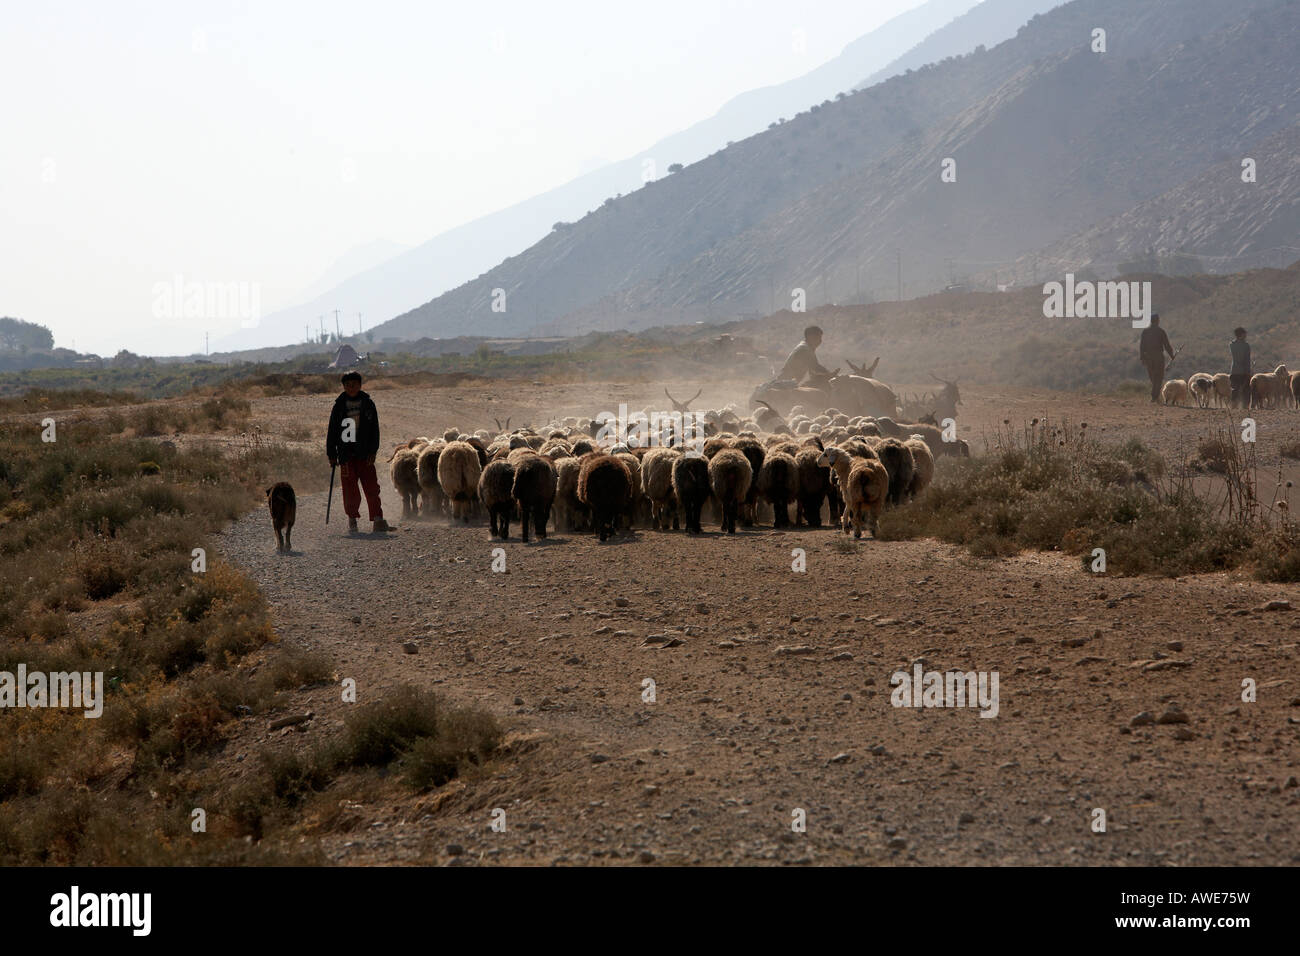 Quashqai nomads hereding sheep and goats in southern iran - Stock Image